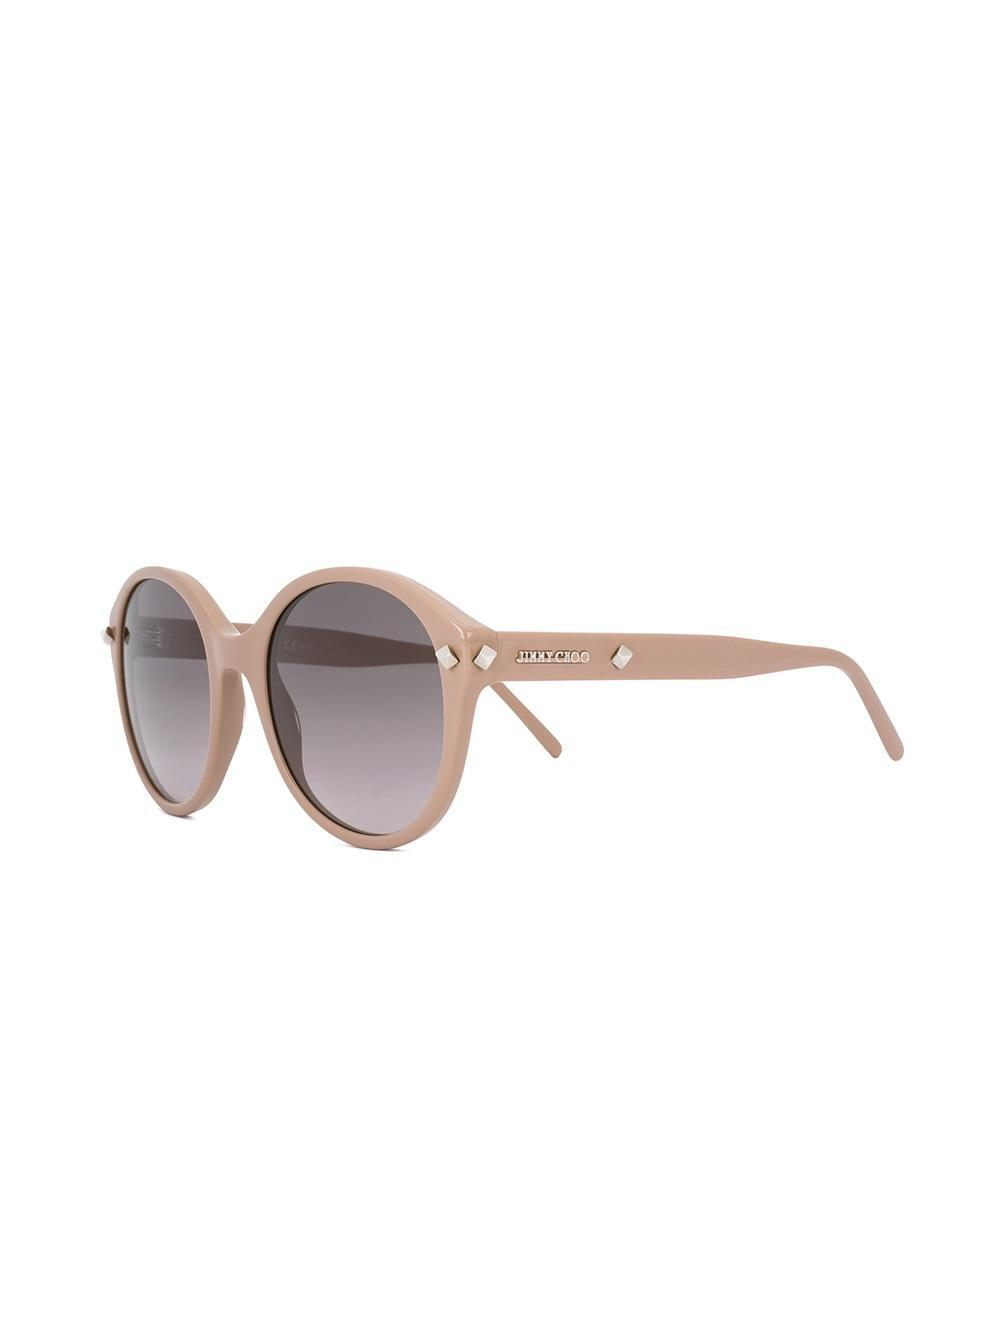 Jimmy Choo Mores Sunglasses in Brown